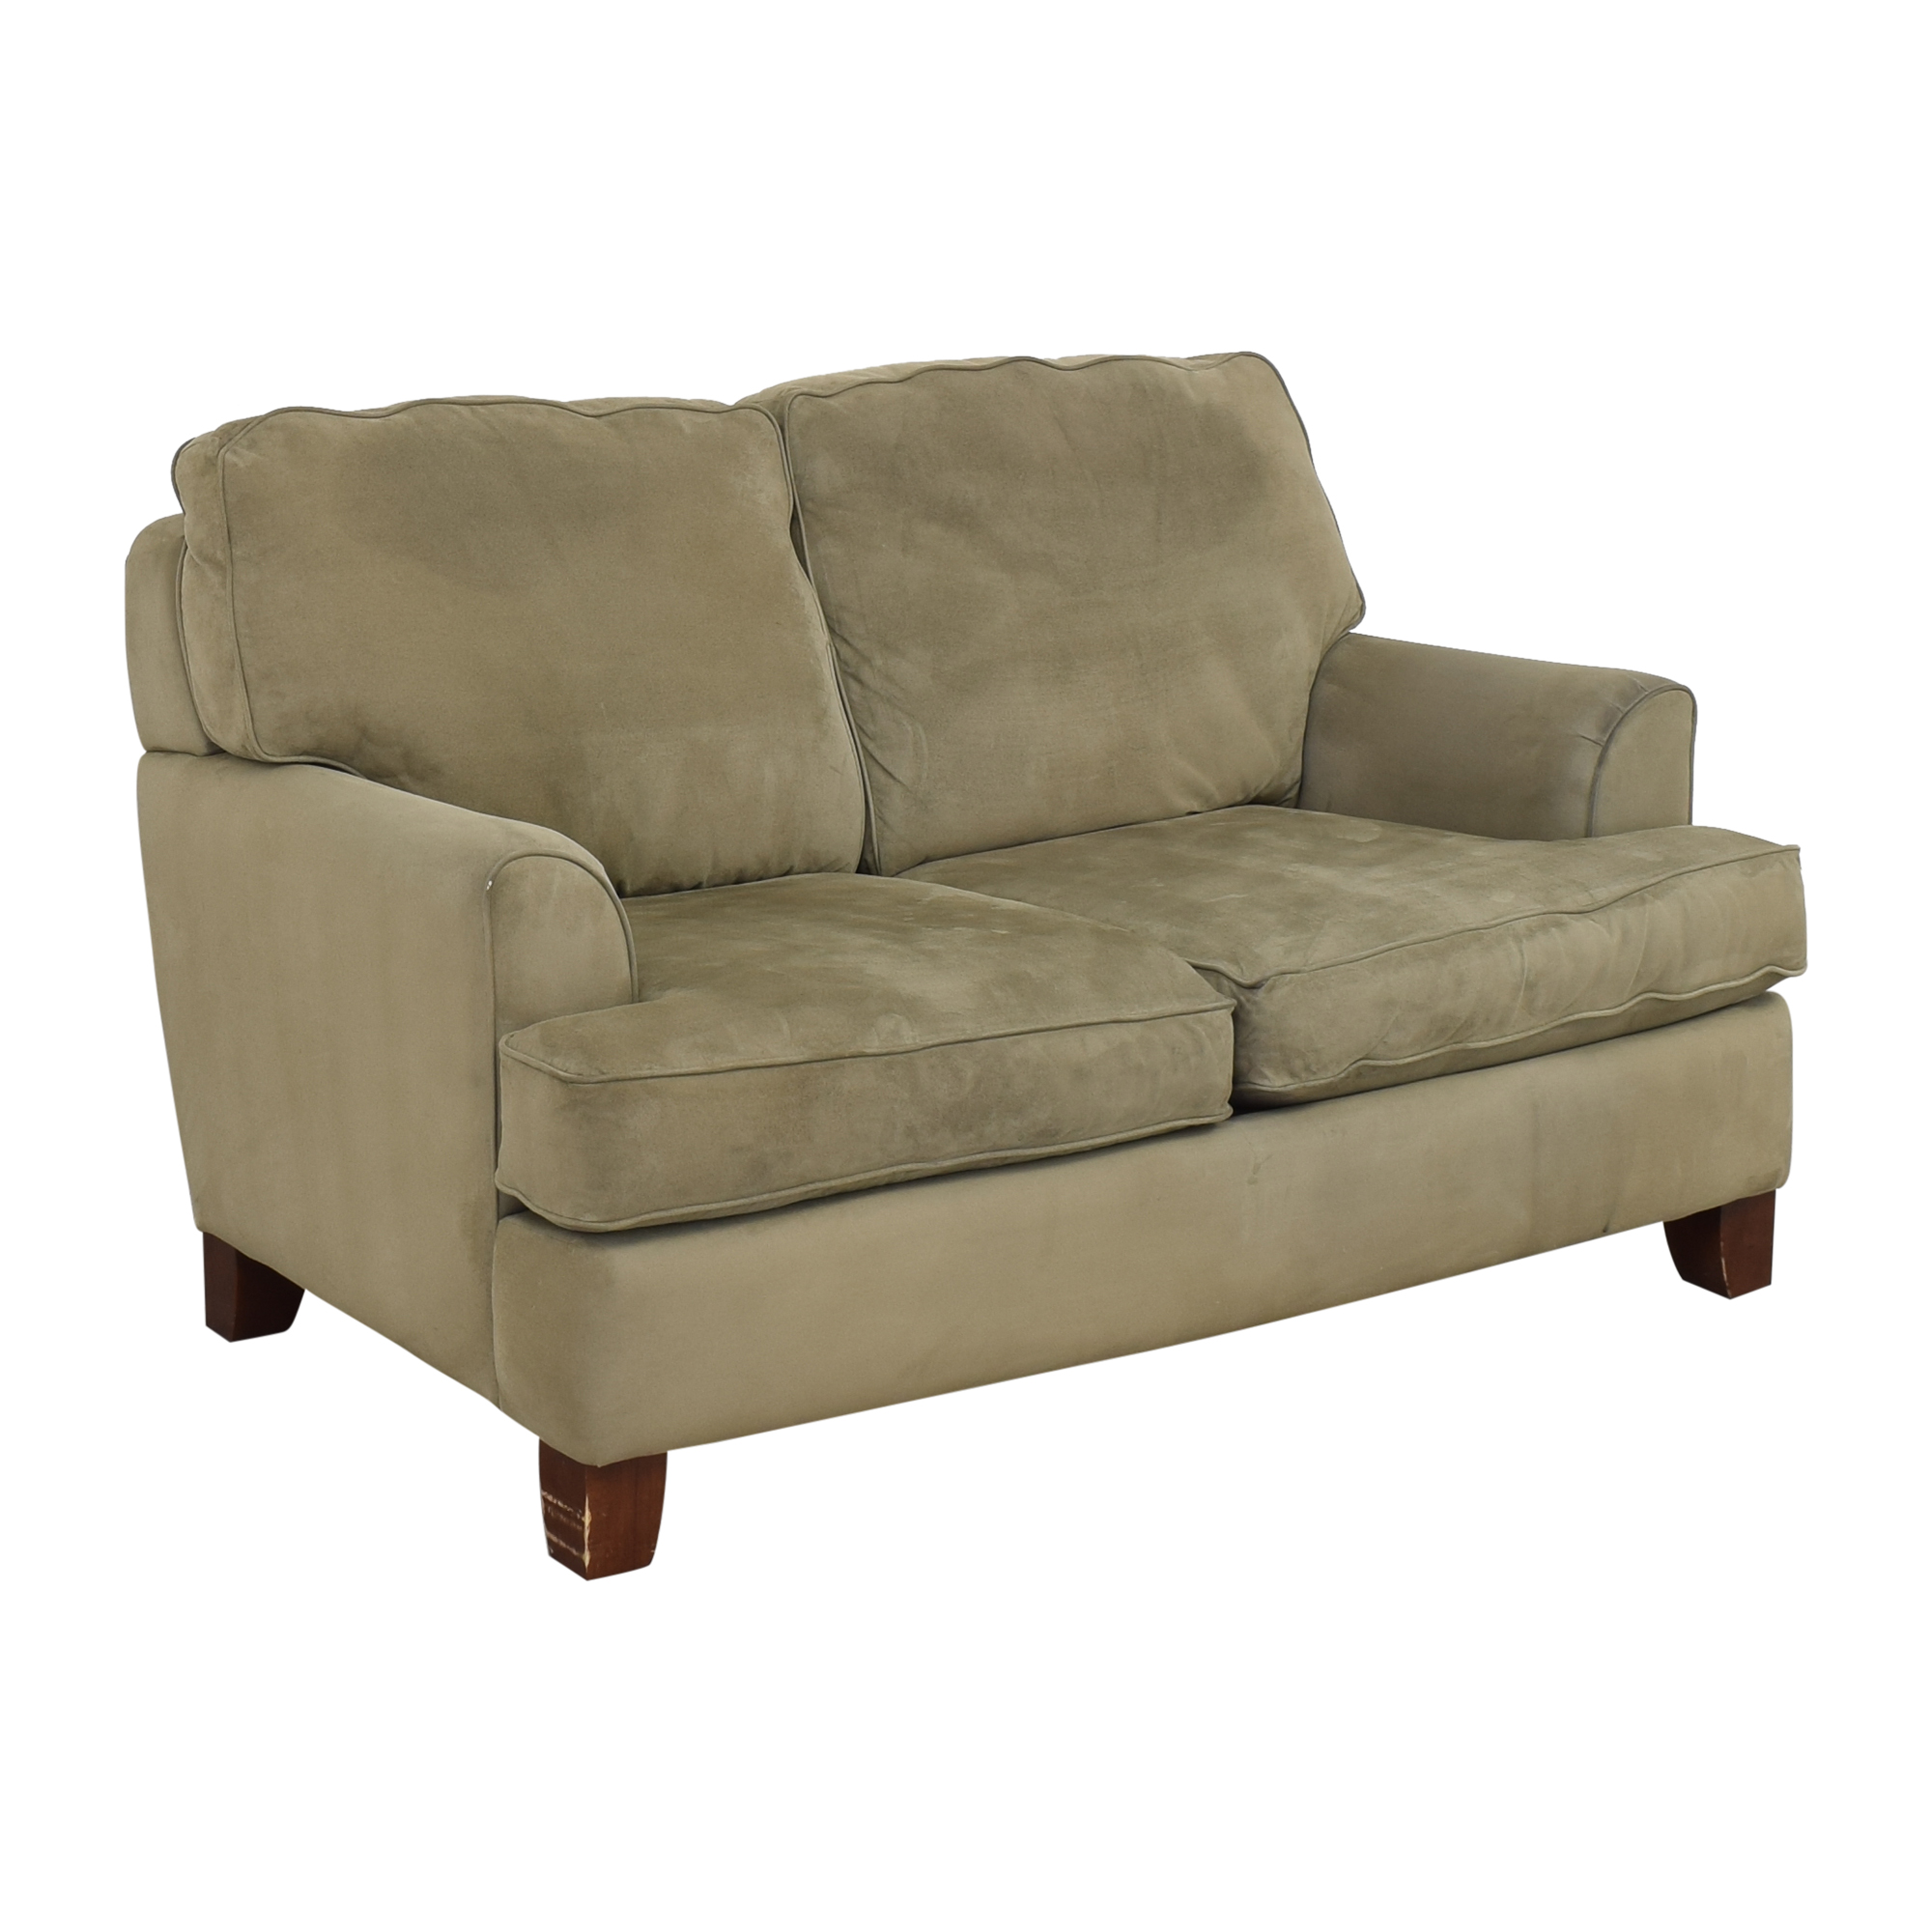 JC Penney JC Penney Two Cushion Loveseat used